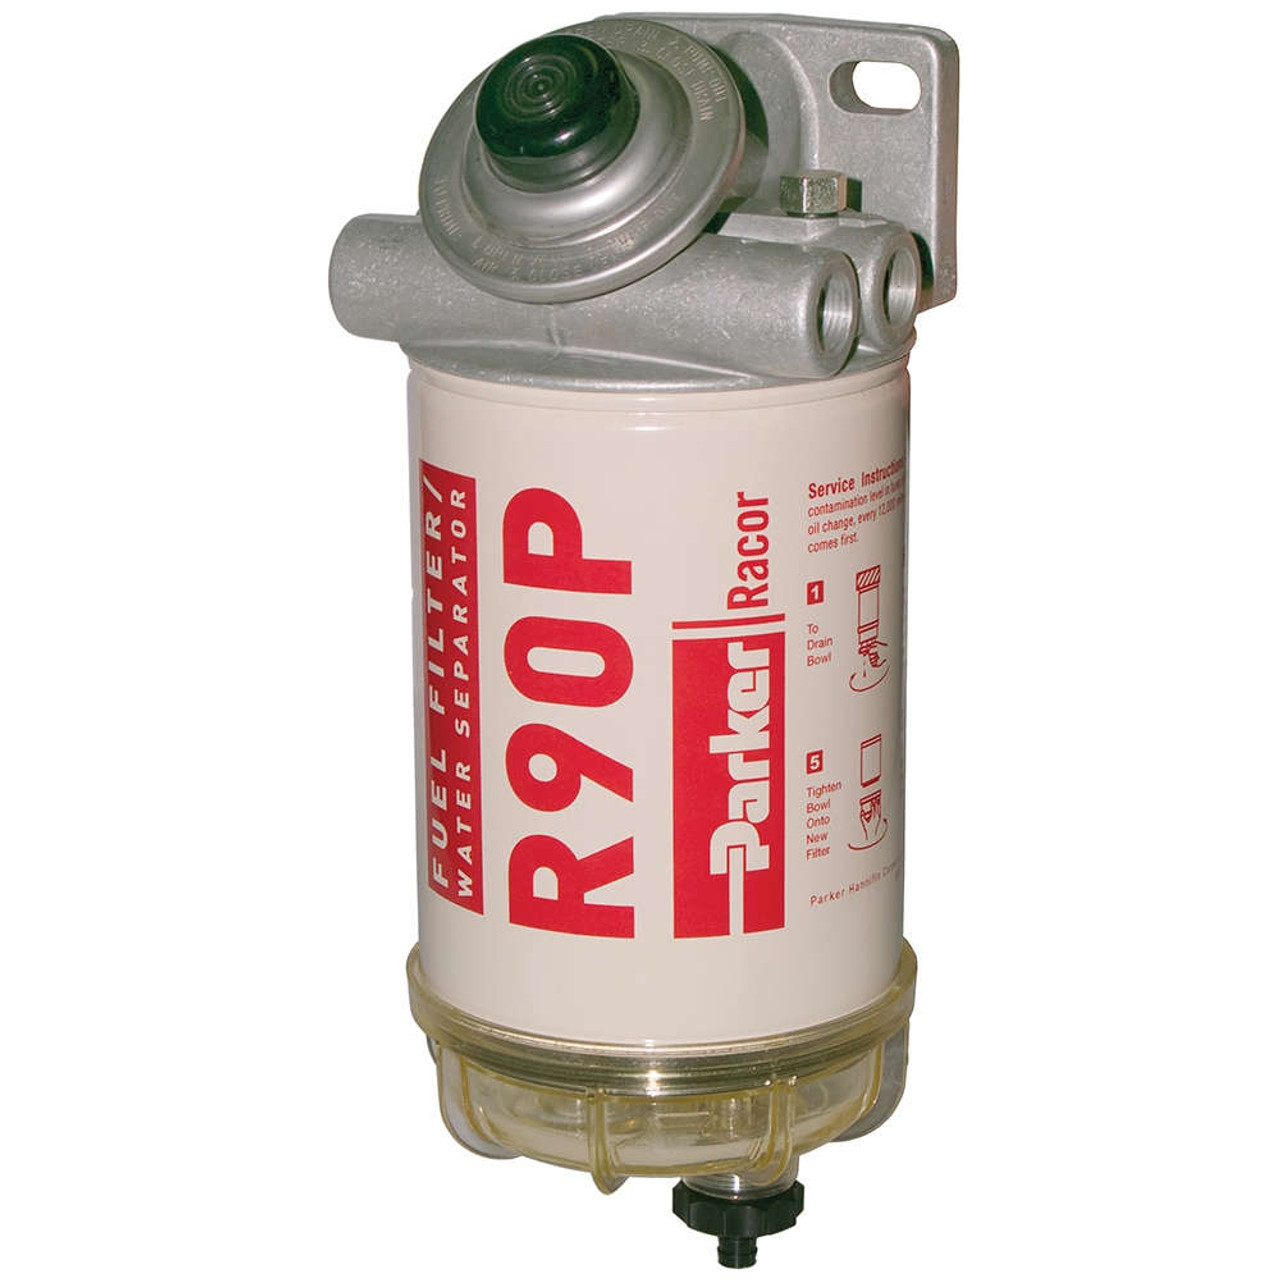 Racor 400 Series 90 GPH Diesel Spin-On Fuel Filter - 30 Micron - 6